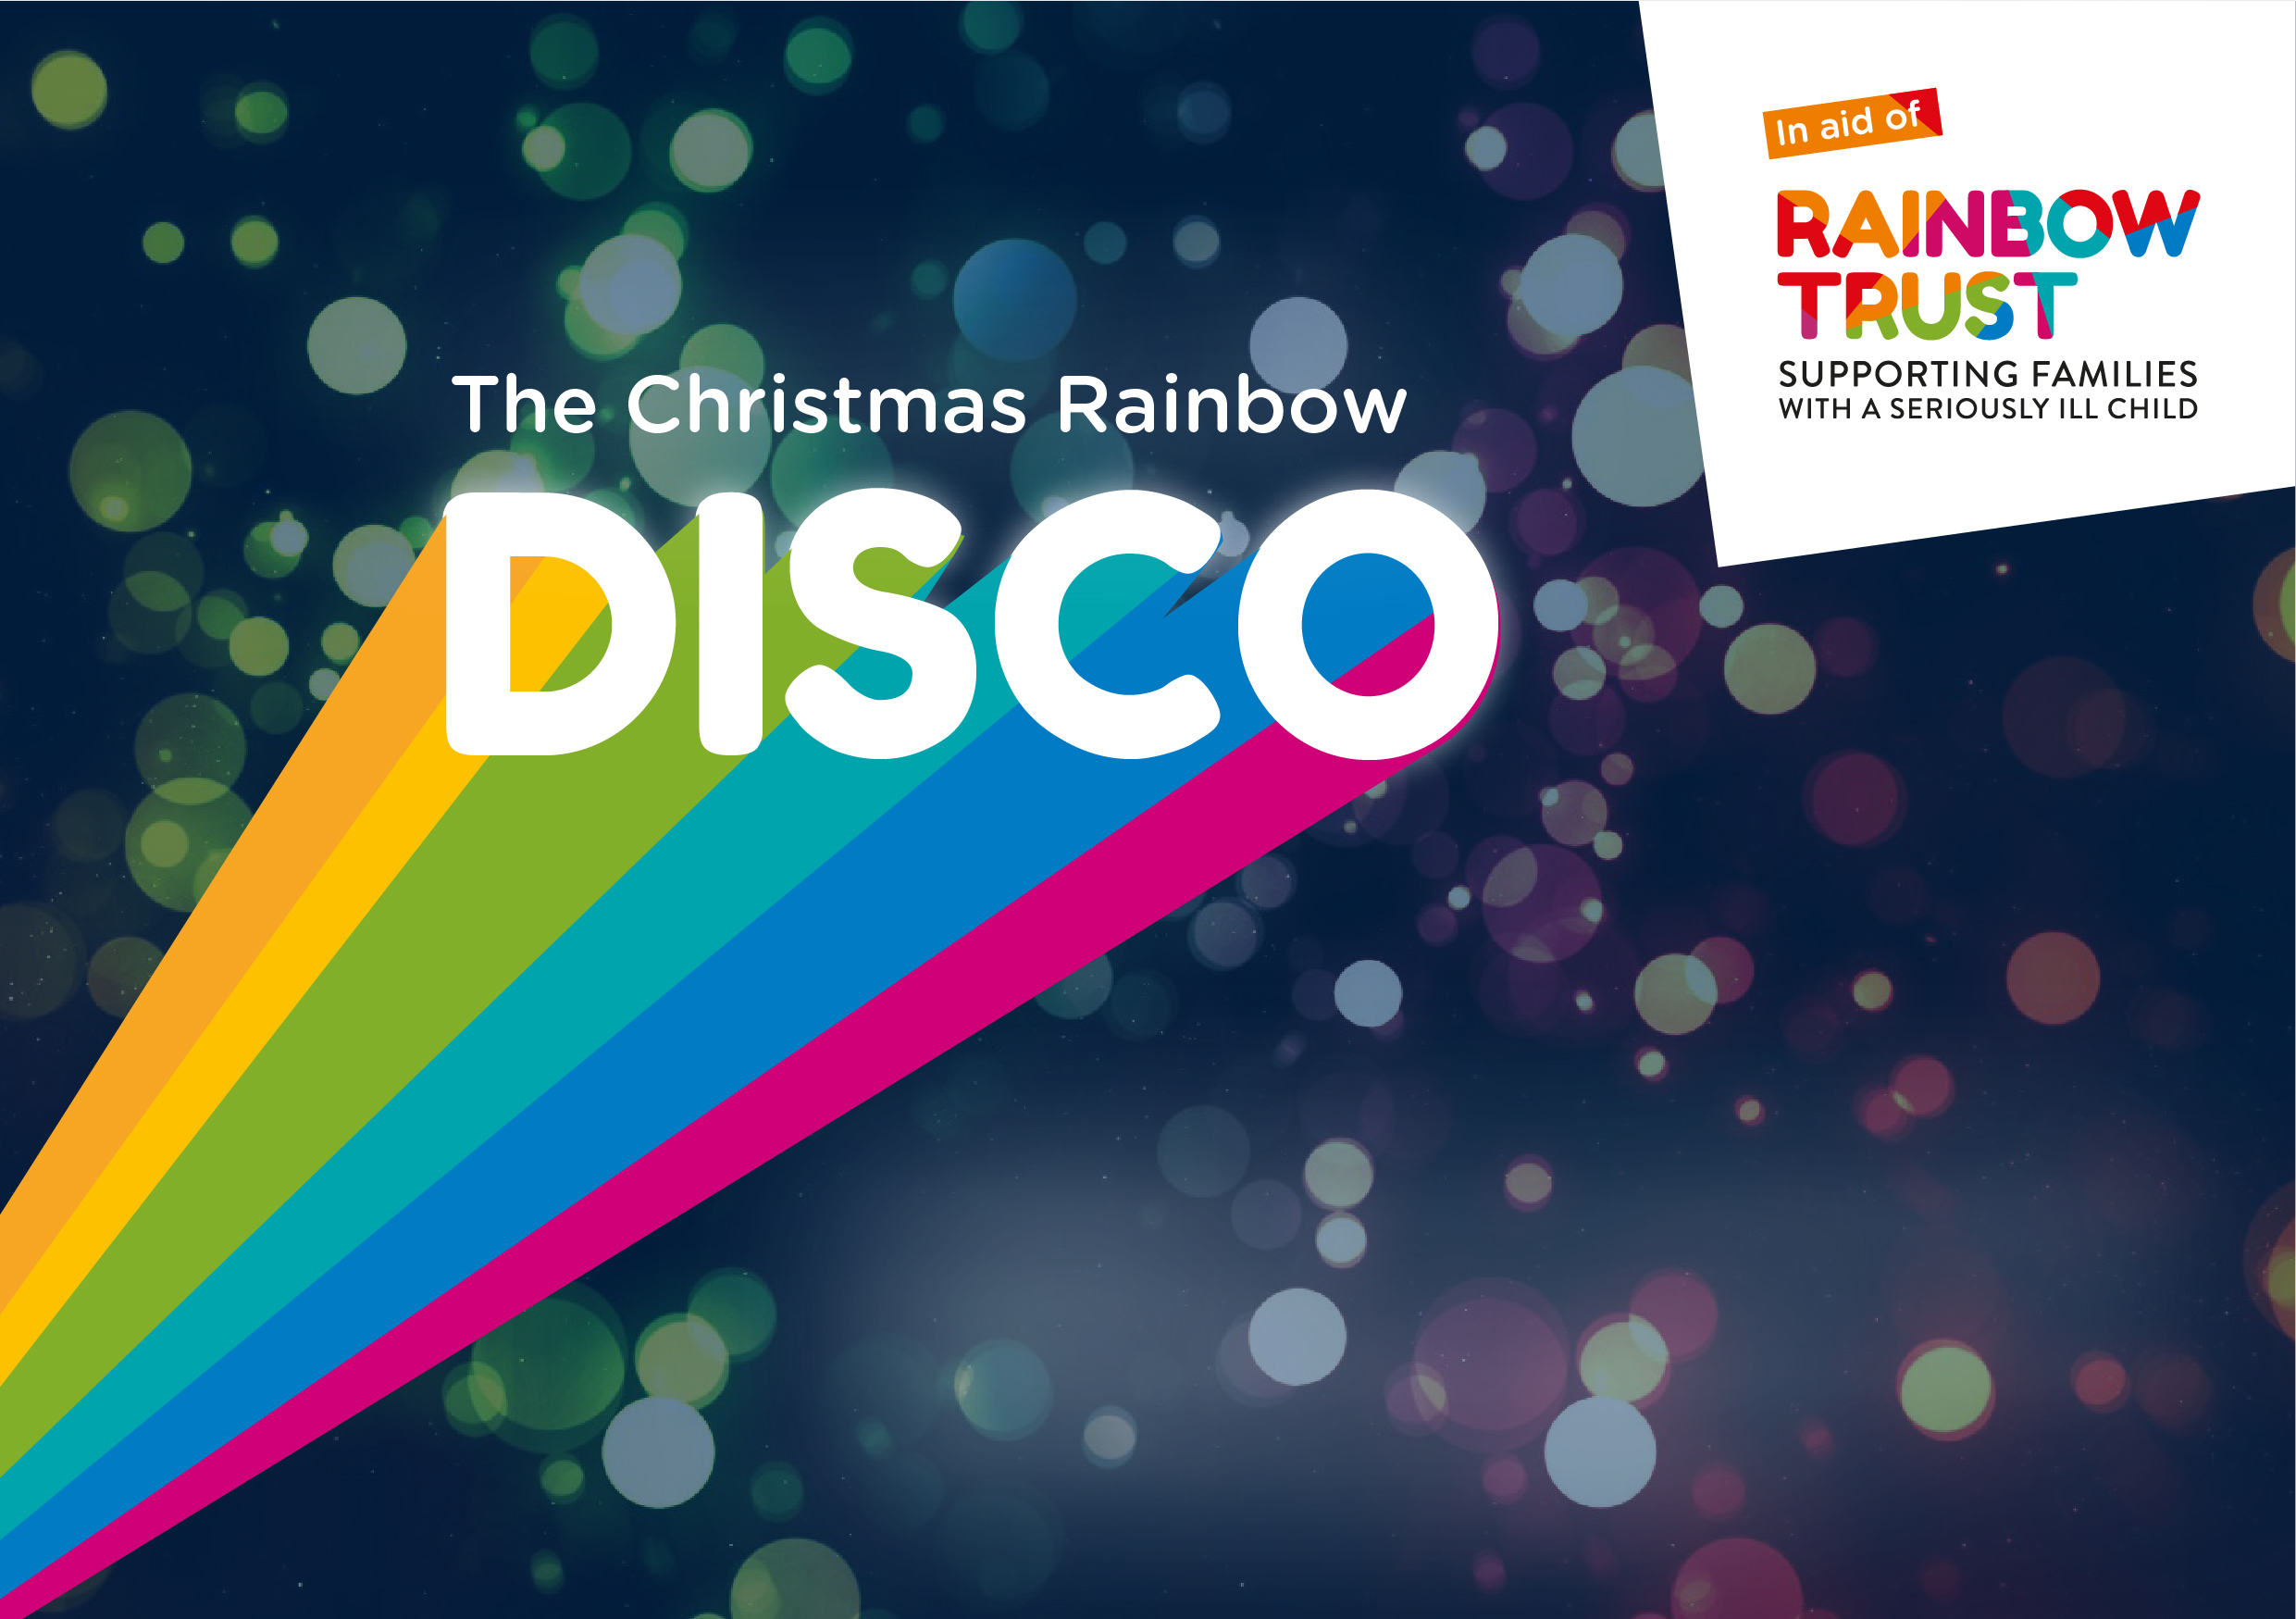 The Christmas Rainbow Disco